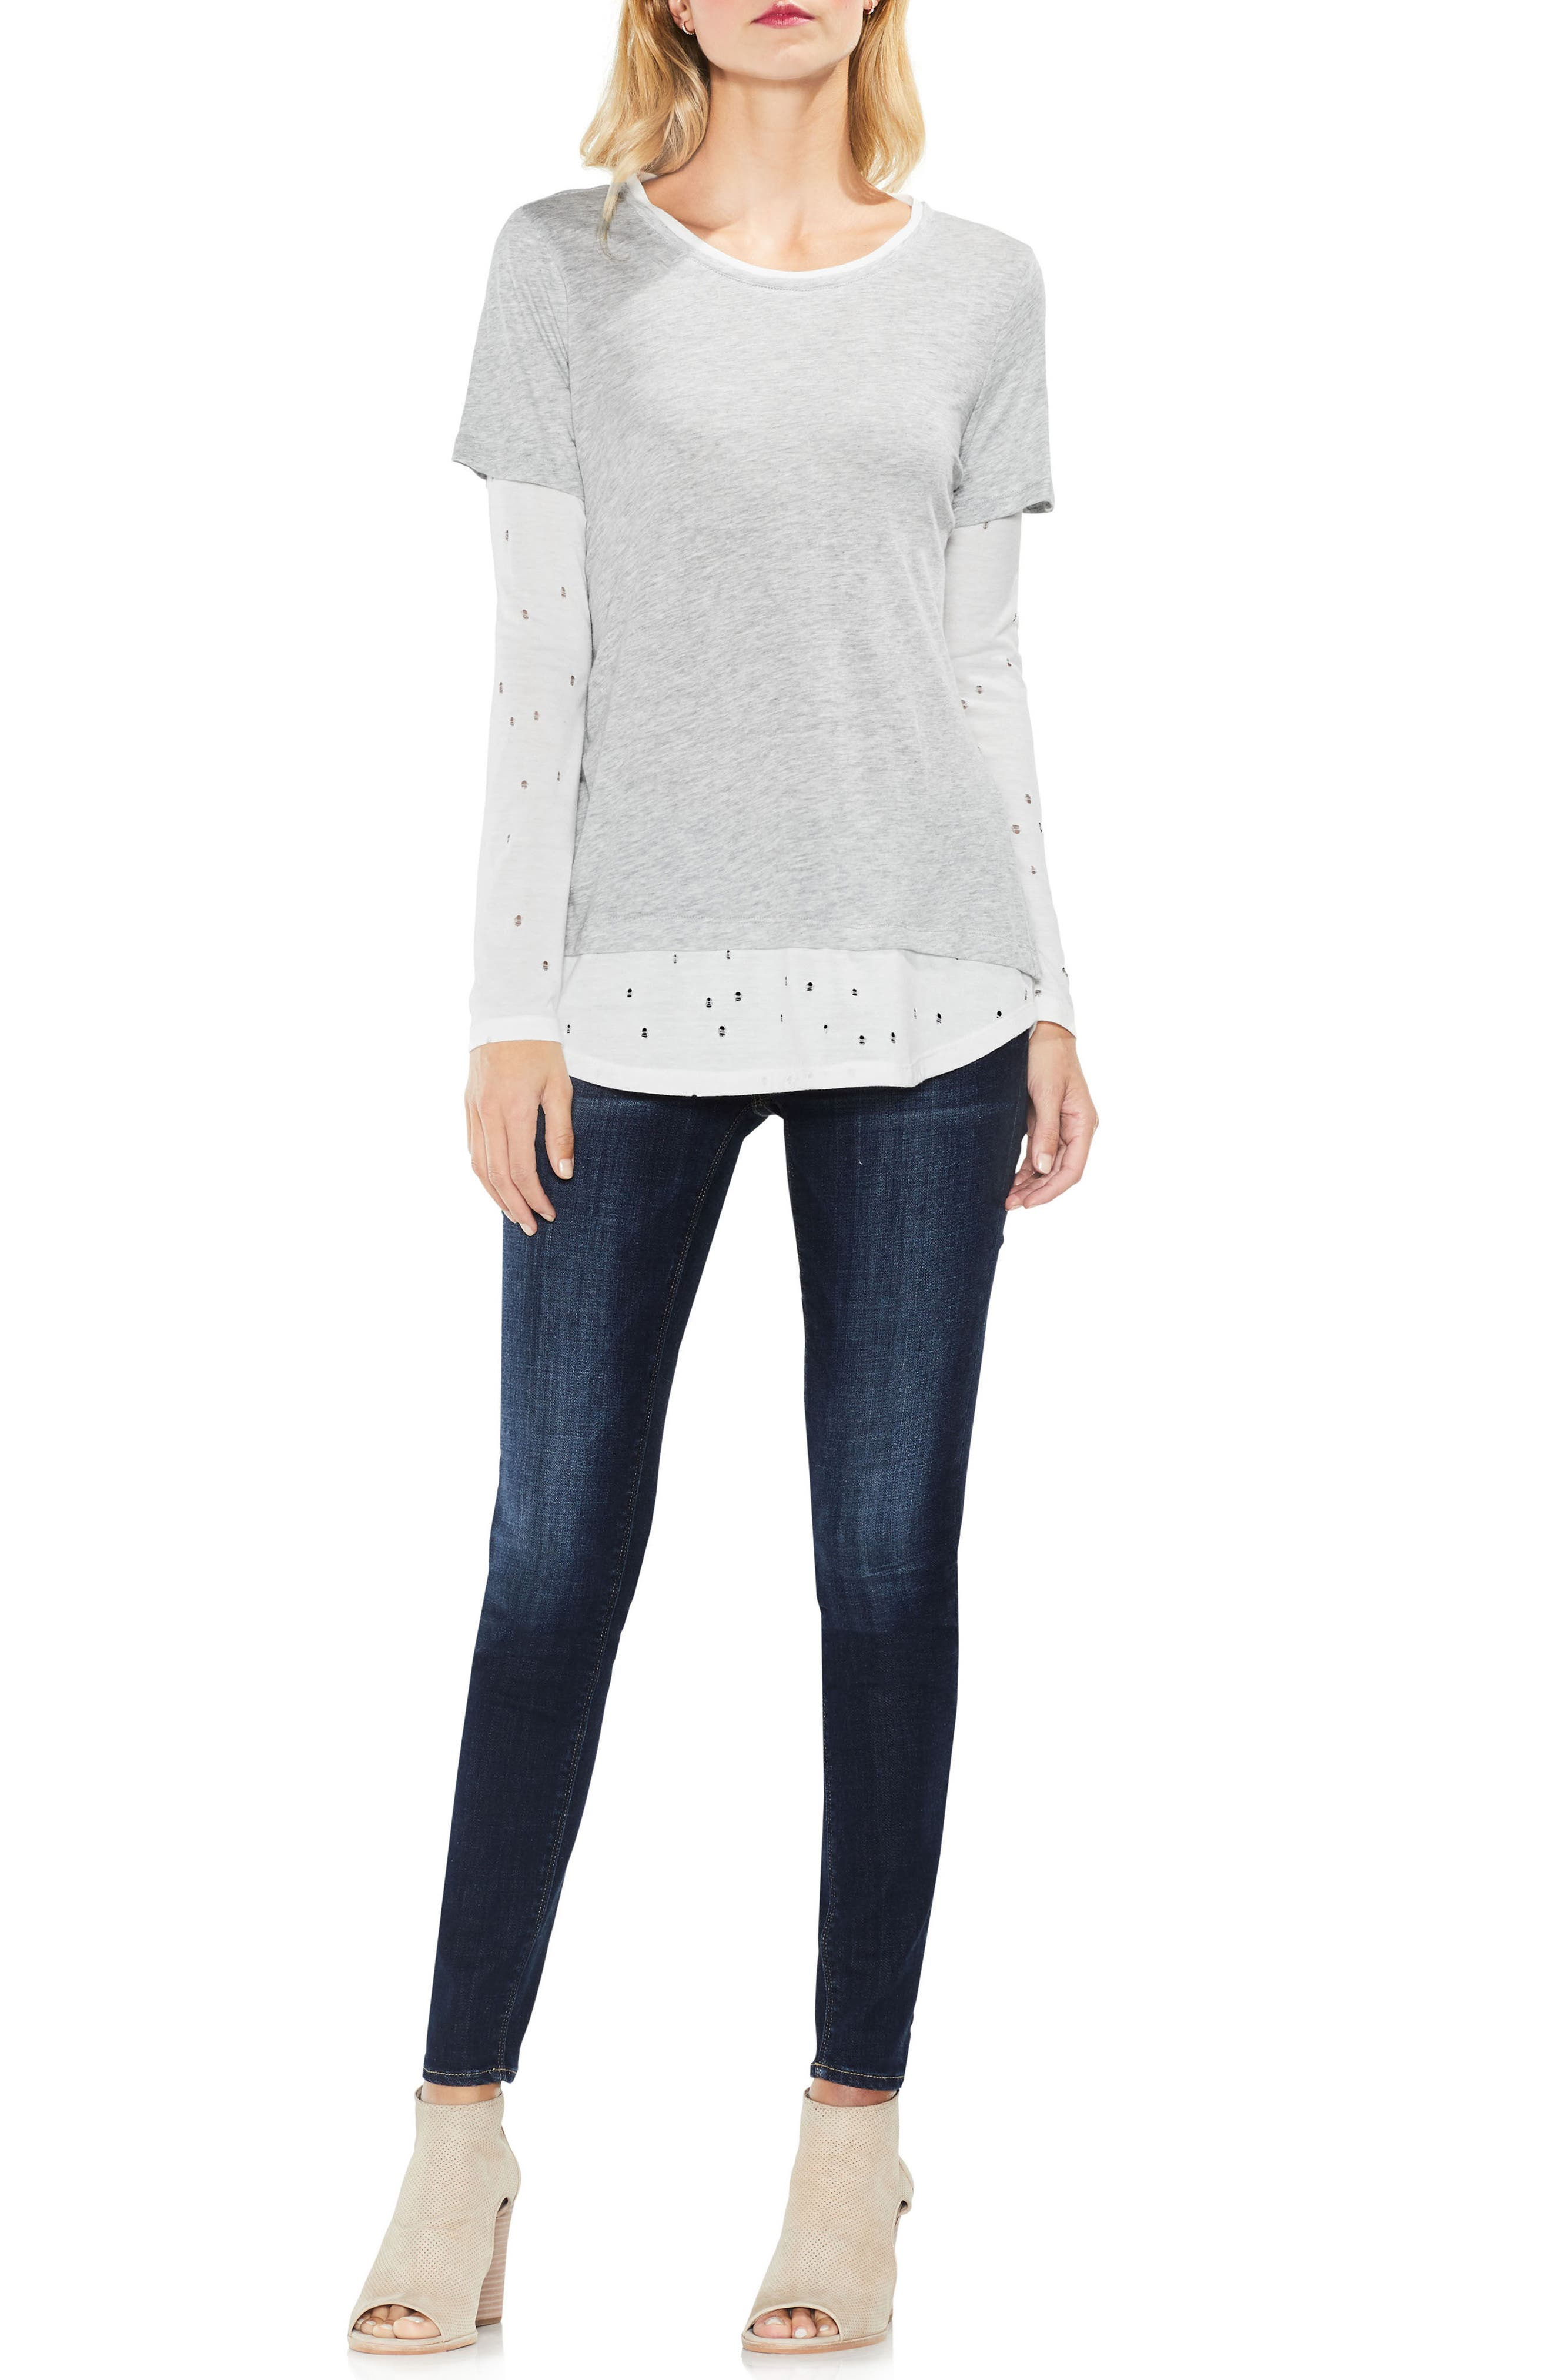 Alternate Image 3  - Two by Vince Camuto Distressed Mix Media Top